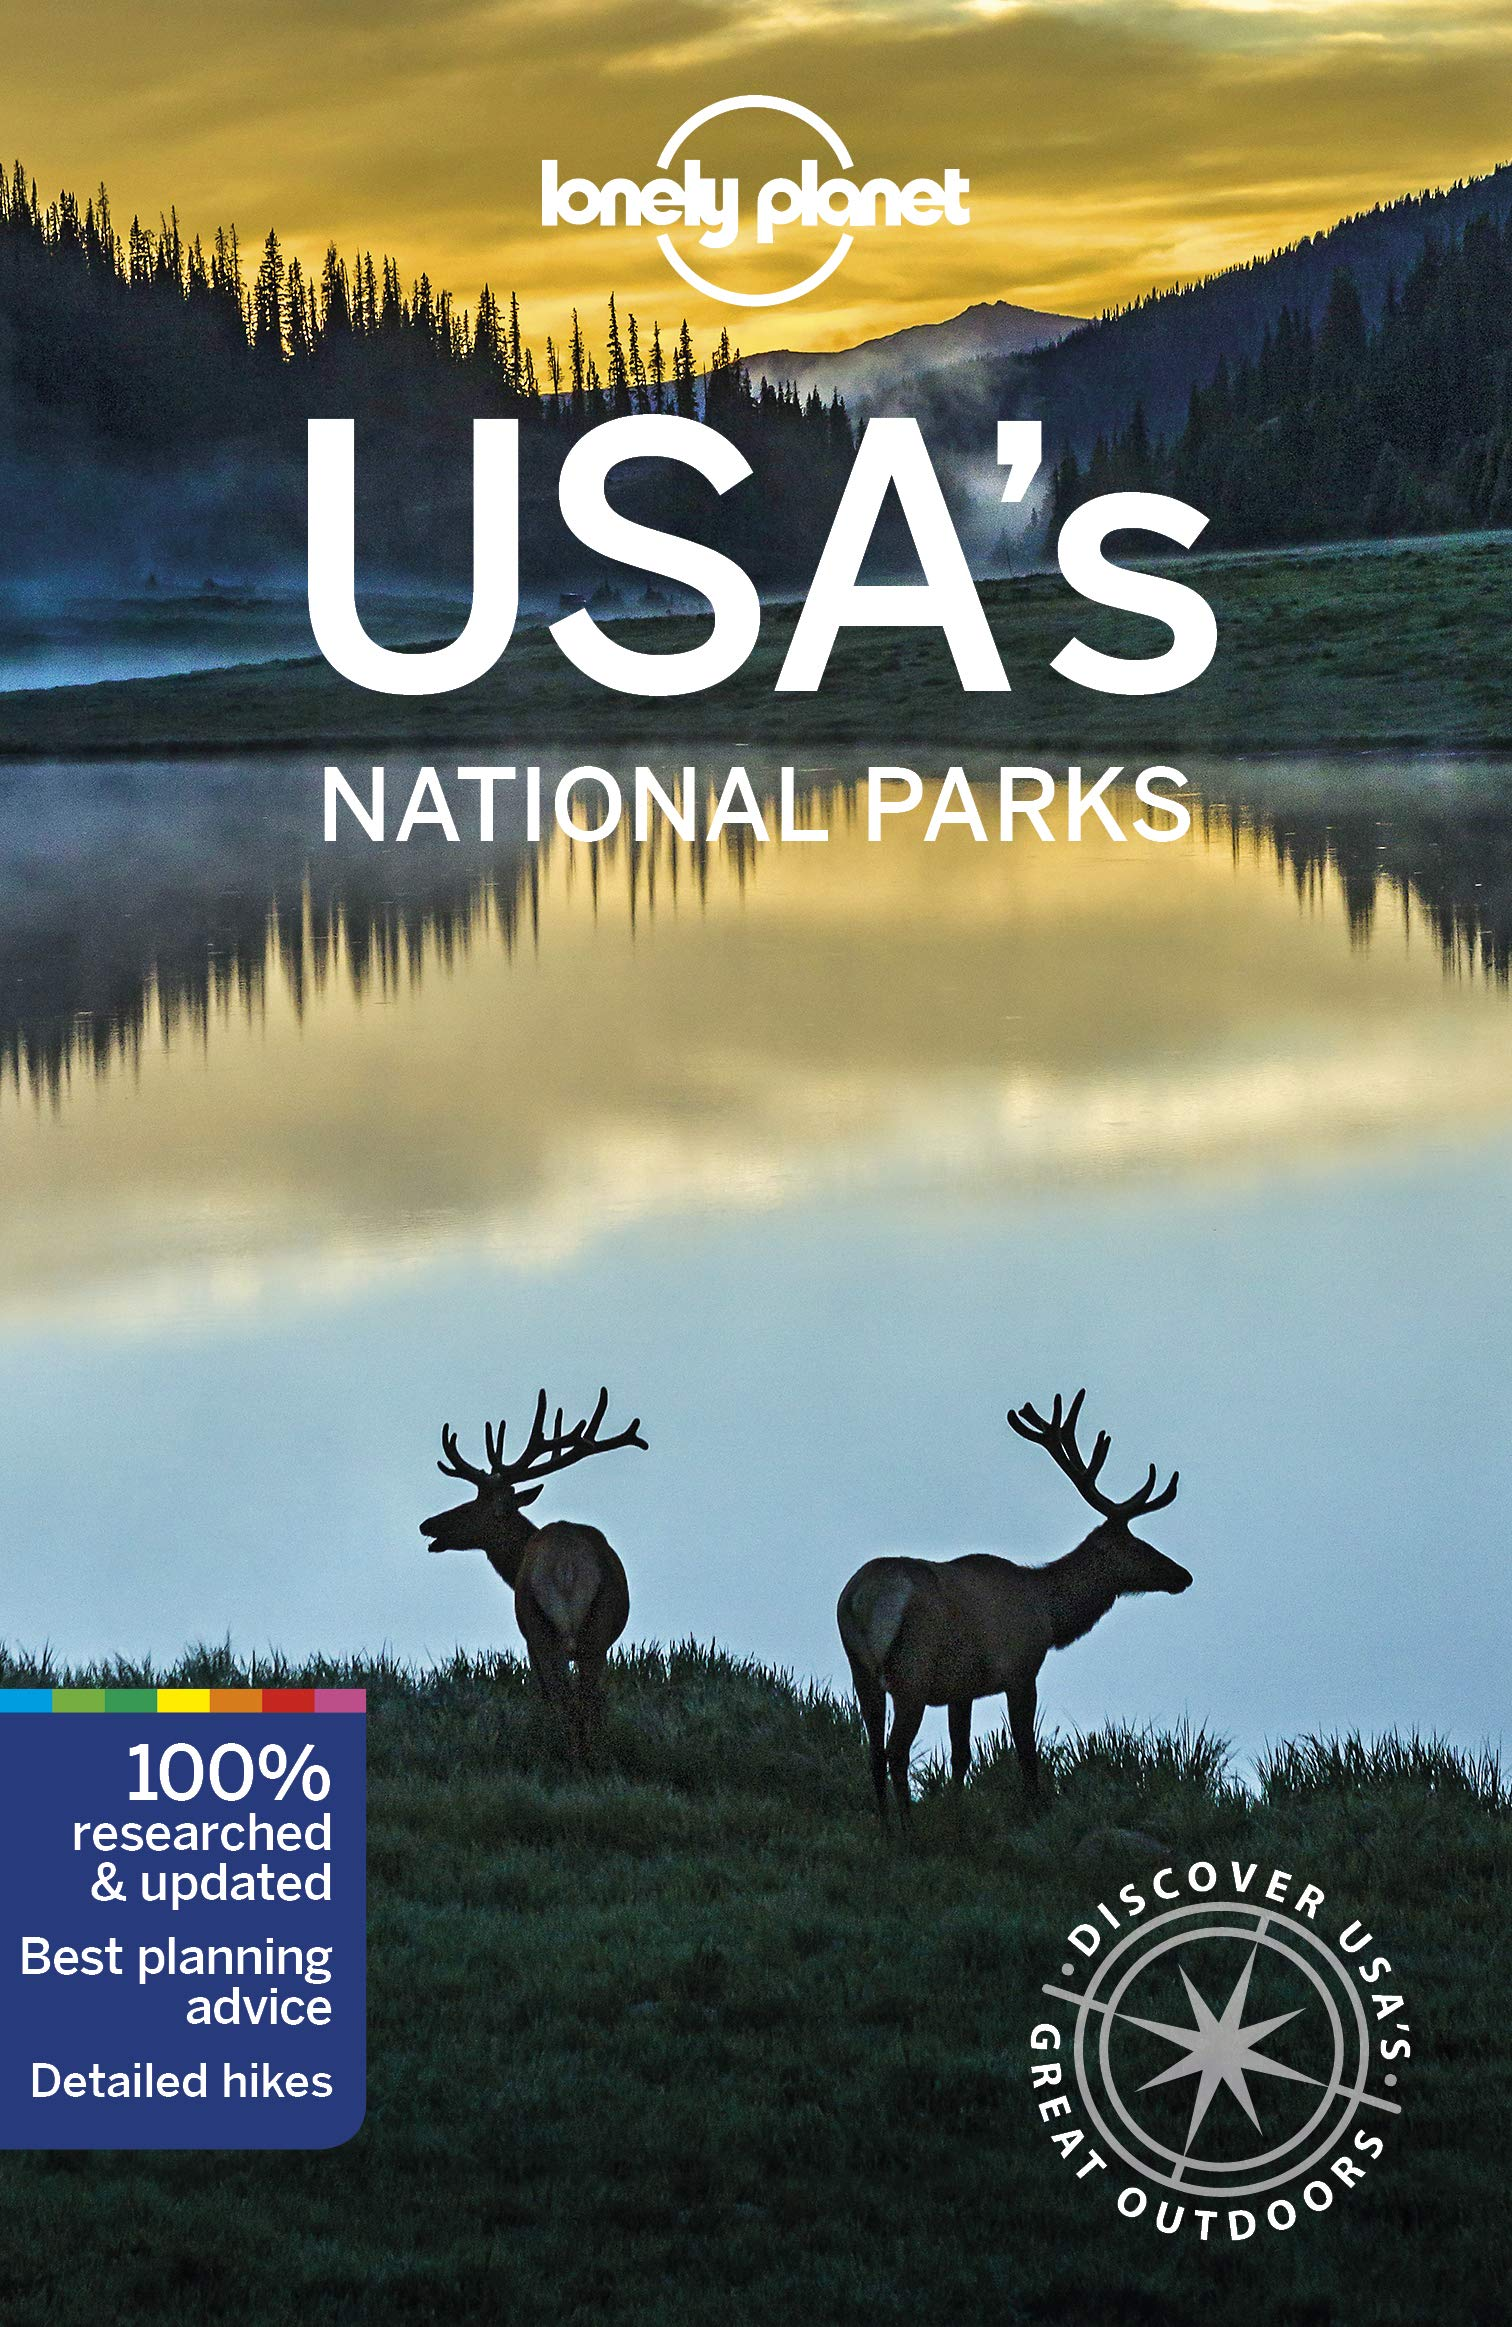 Lonely Planet USA National Parks 9781786575968  Lonely Planet Travel Guides  Natuurgidsen, Reisgidsen Verenigde Staten